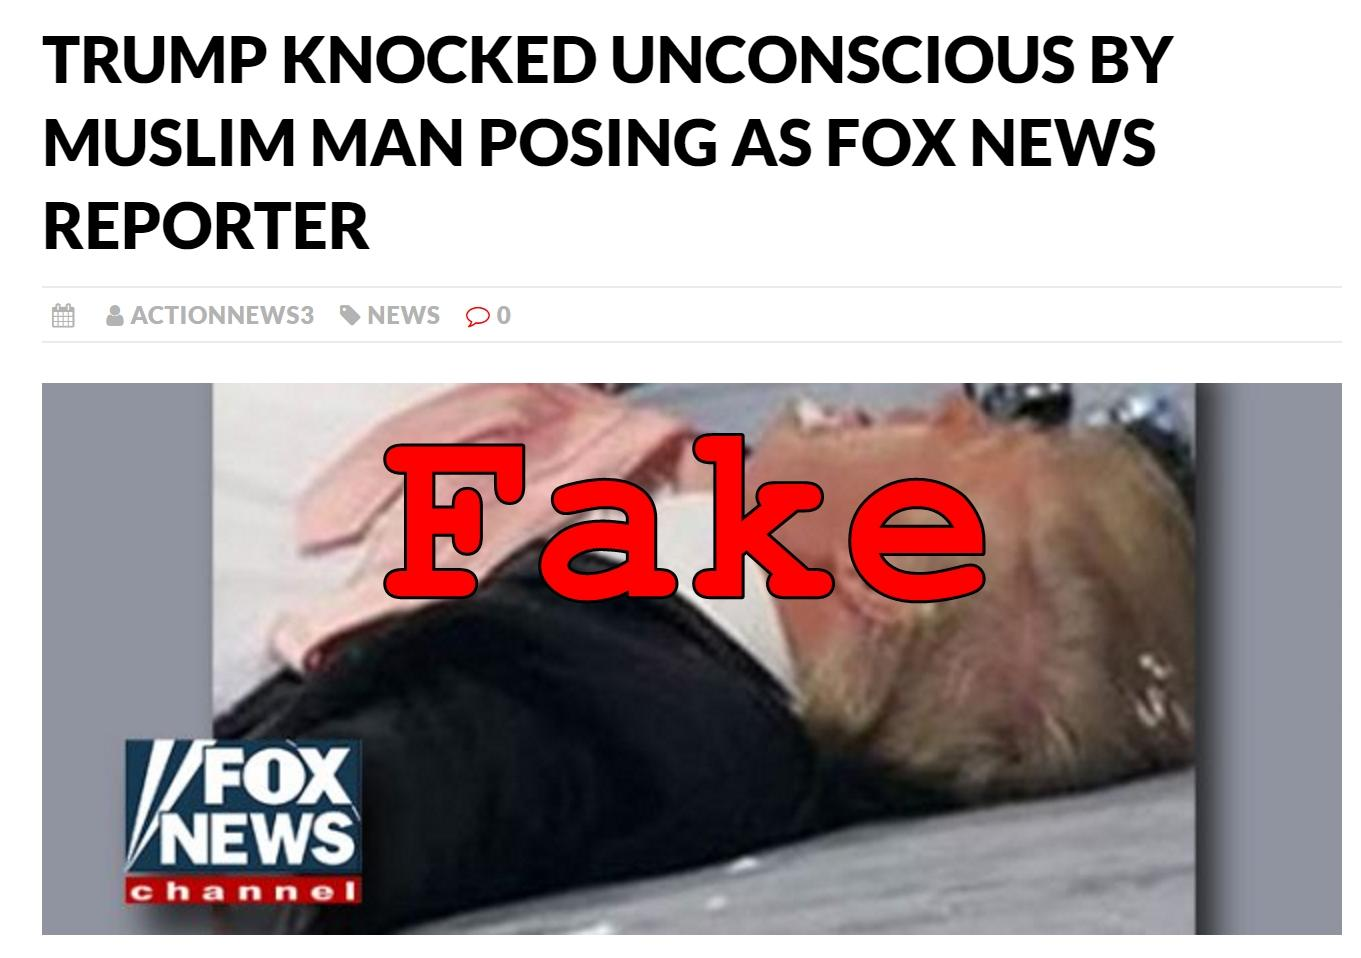 Fake News: Trump NOT Knocked Unconscious By Muslim Man Posing As Fox News Reporter